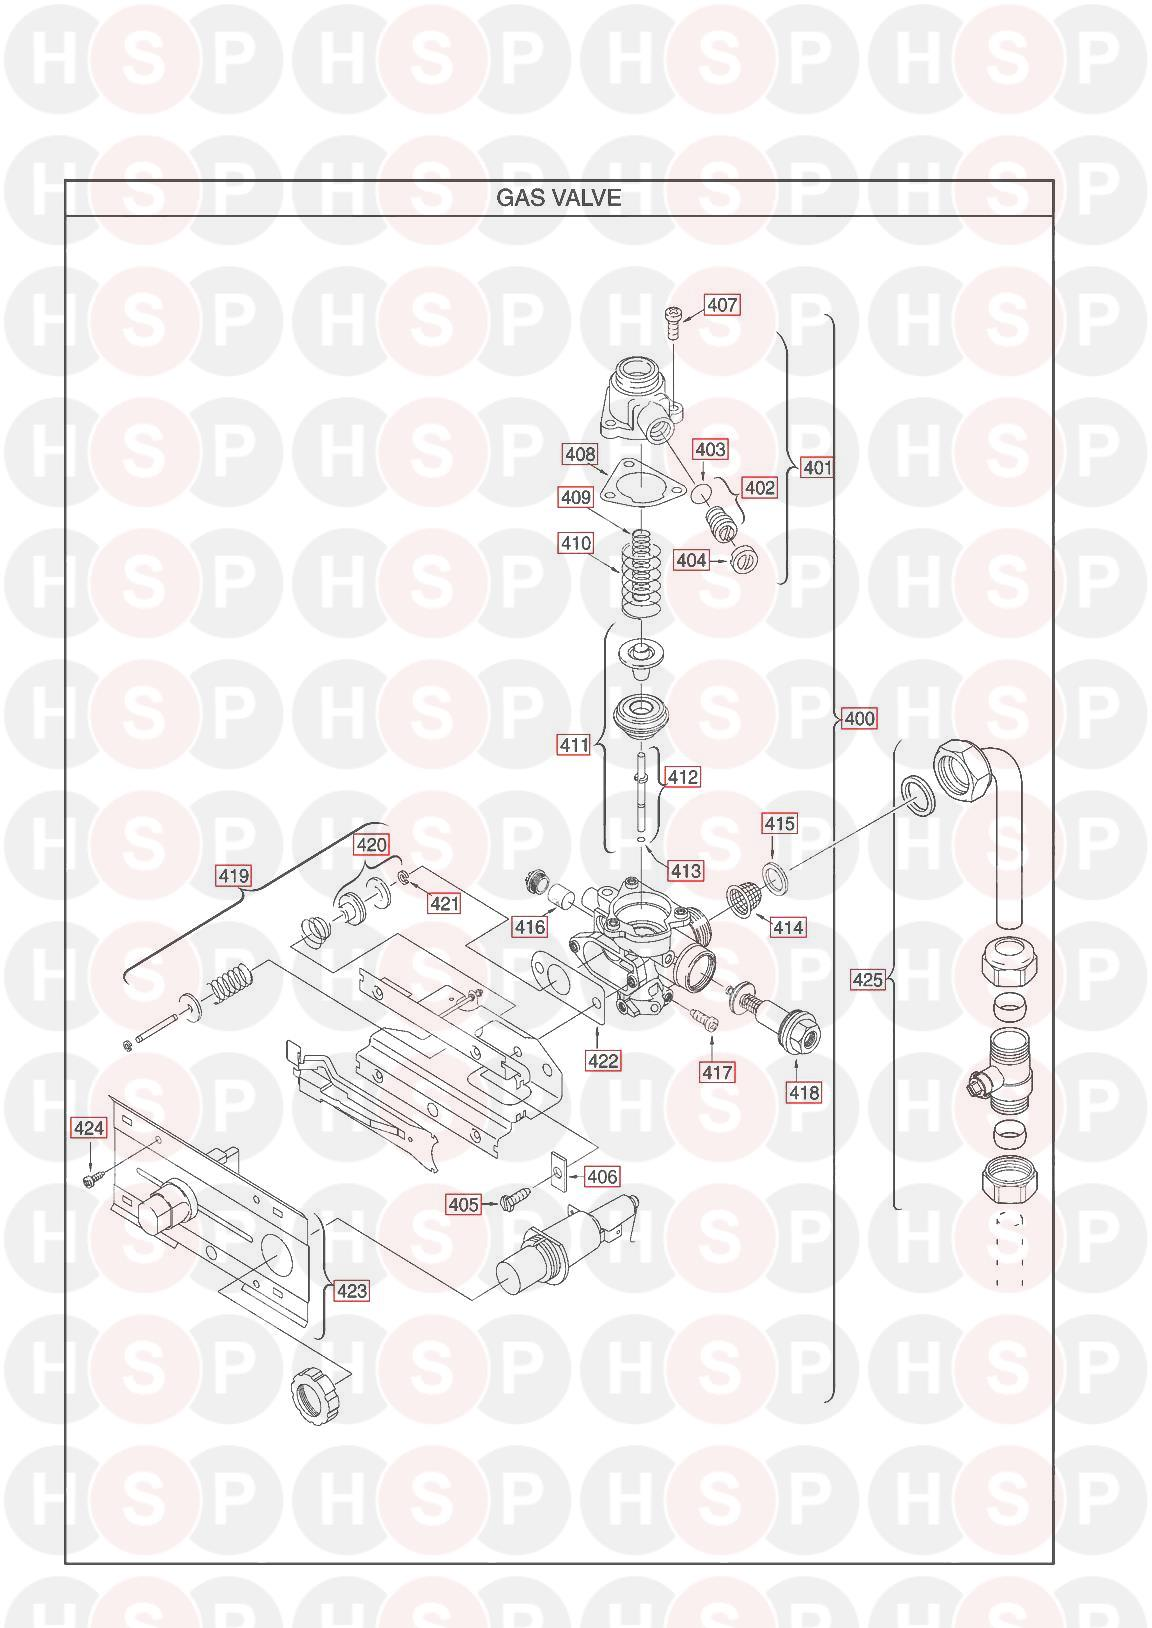 Main Multipoint BF WATER HEATER Appliance Diagram (GAS